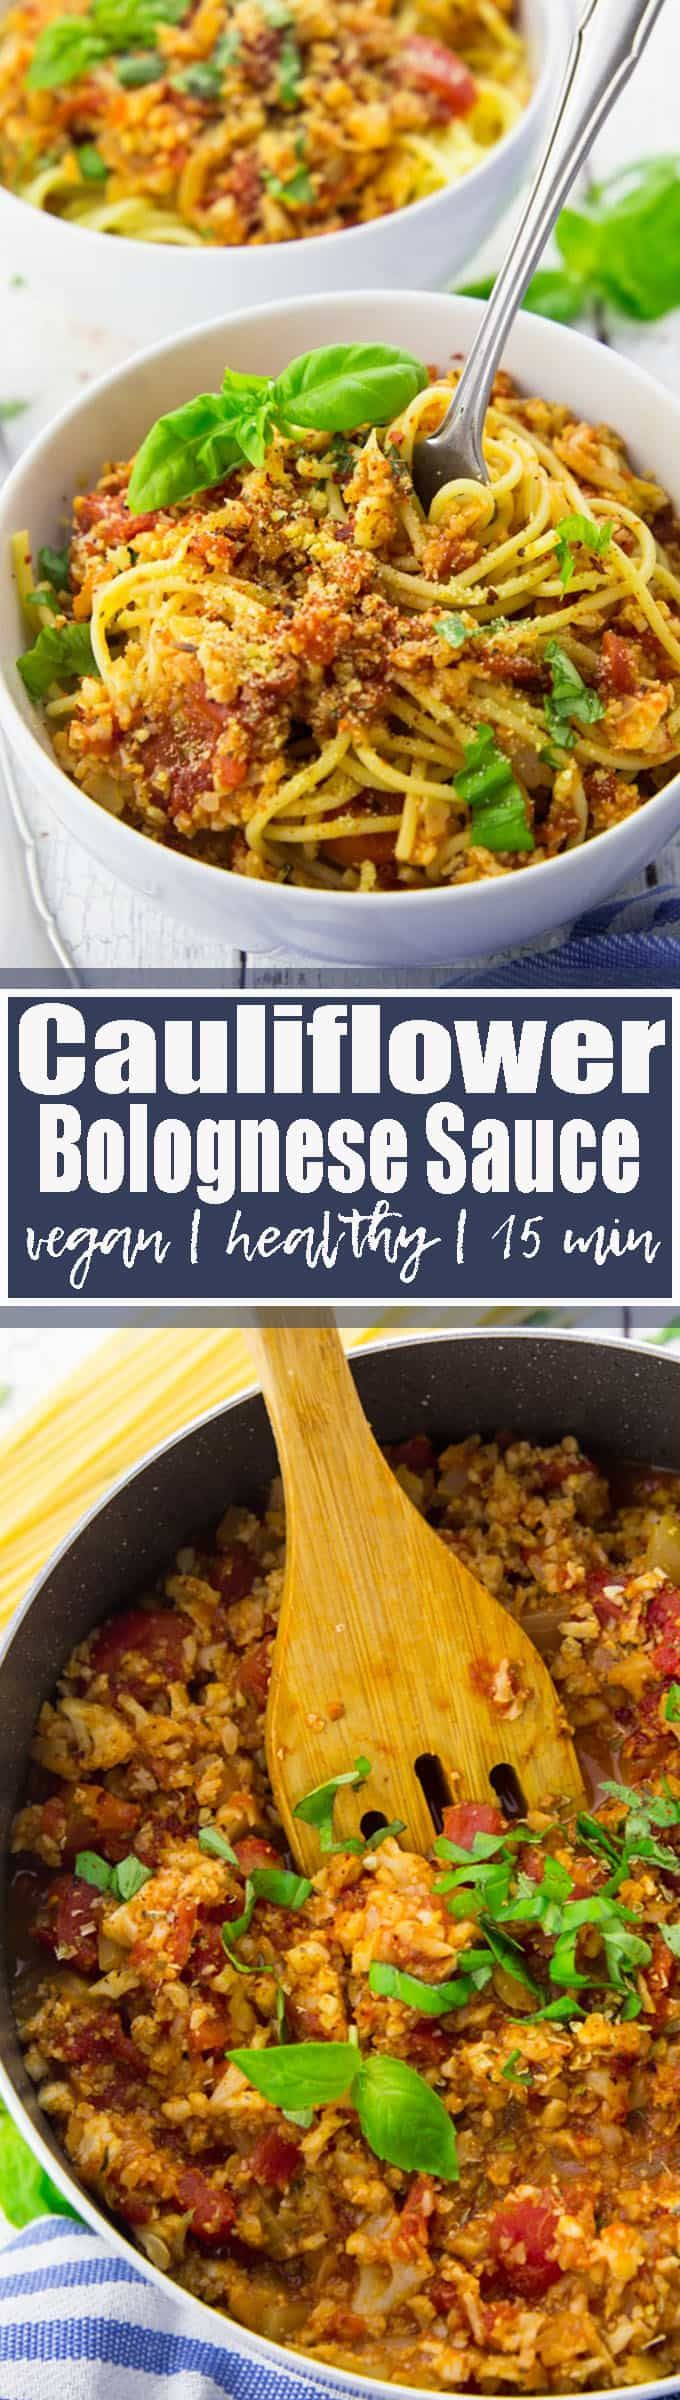 This cauliflower Bolognese sauce is not only super easy to make but it's also incredibly healthy! Instead of ground meat, the recipe calls for cauliflower. This easy pasta sauce is vegan, gluten-free, low in calories, and ready in less than 15 minutes. Vegan recipes can be so easy!